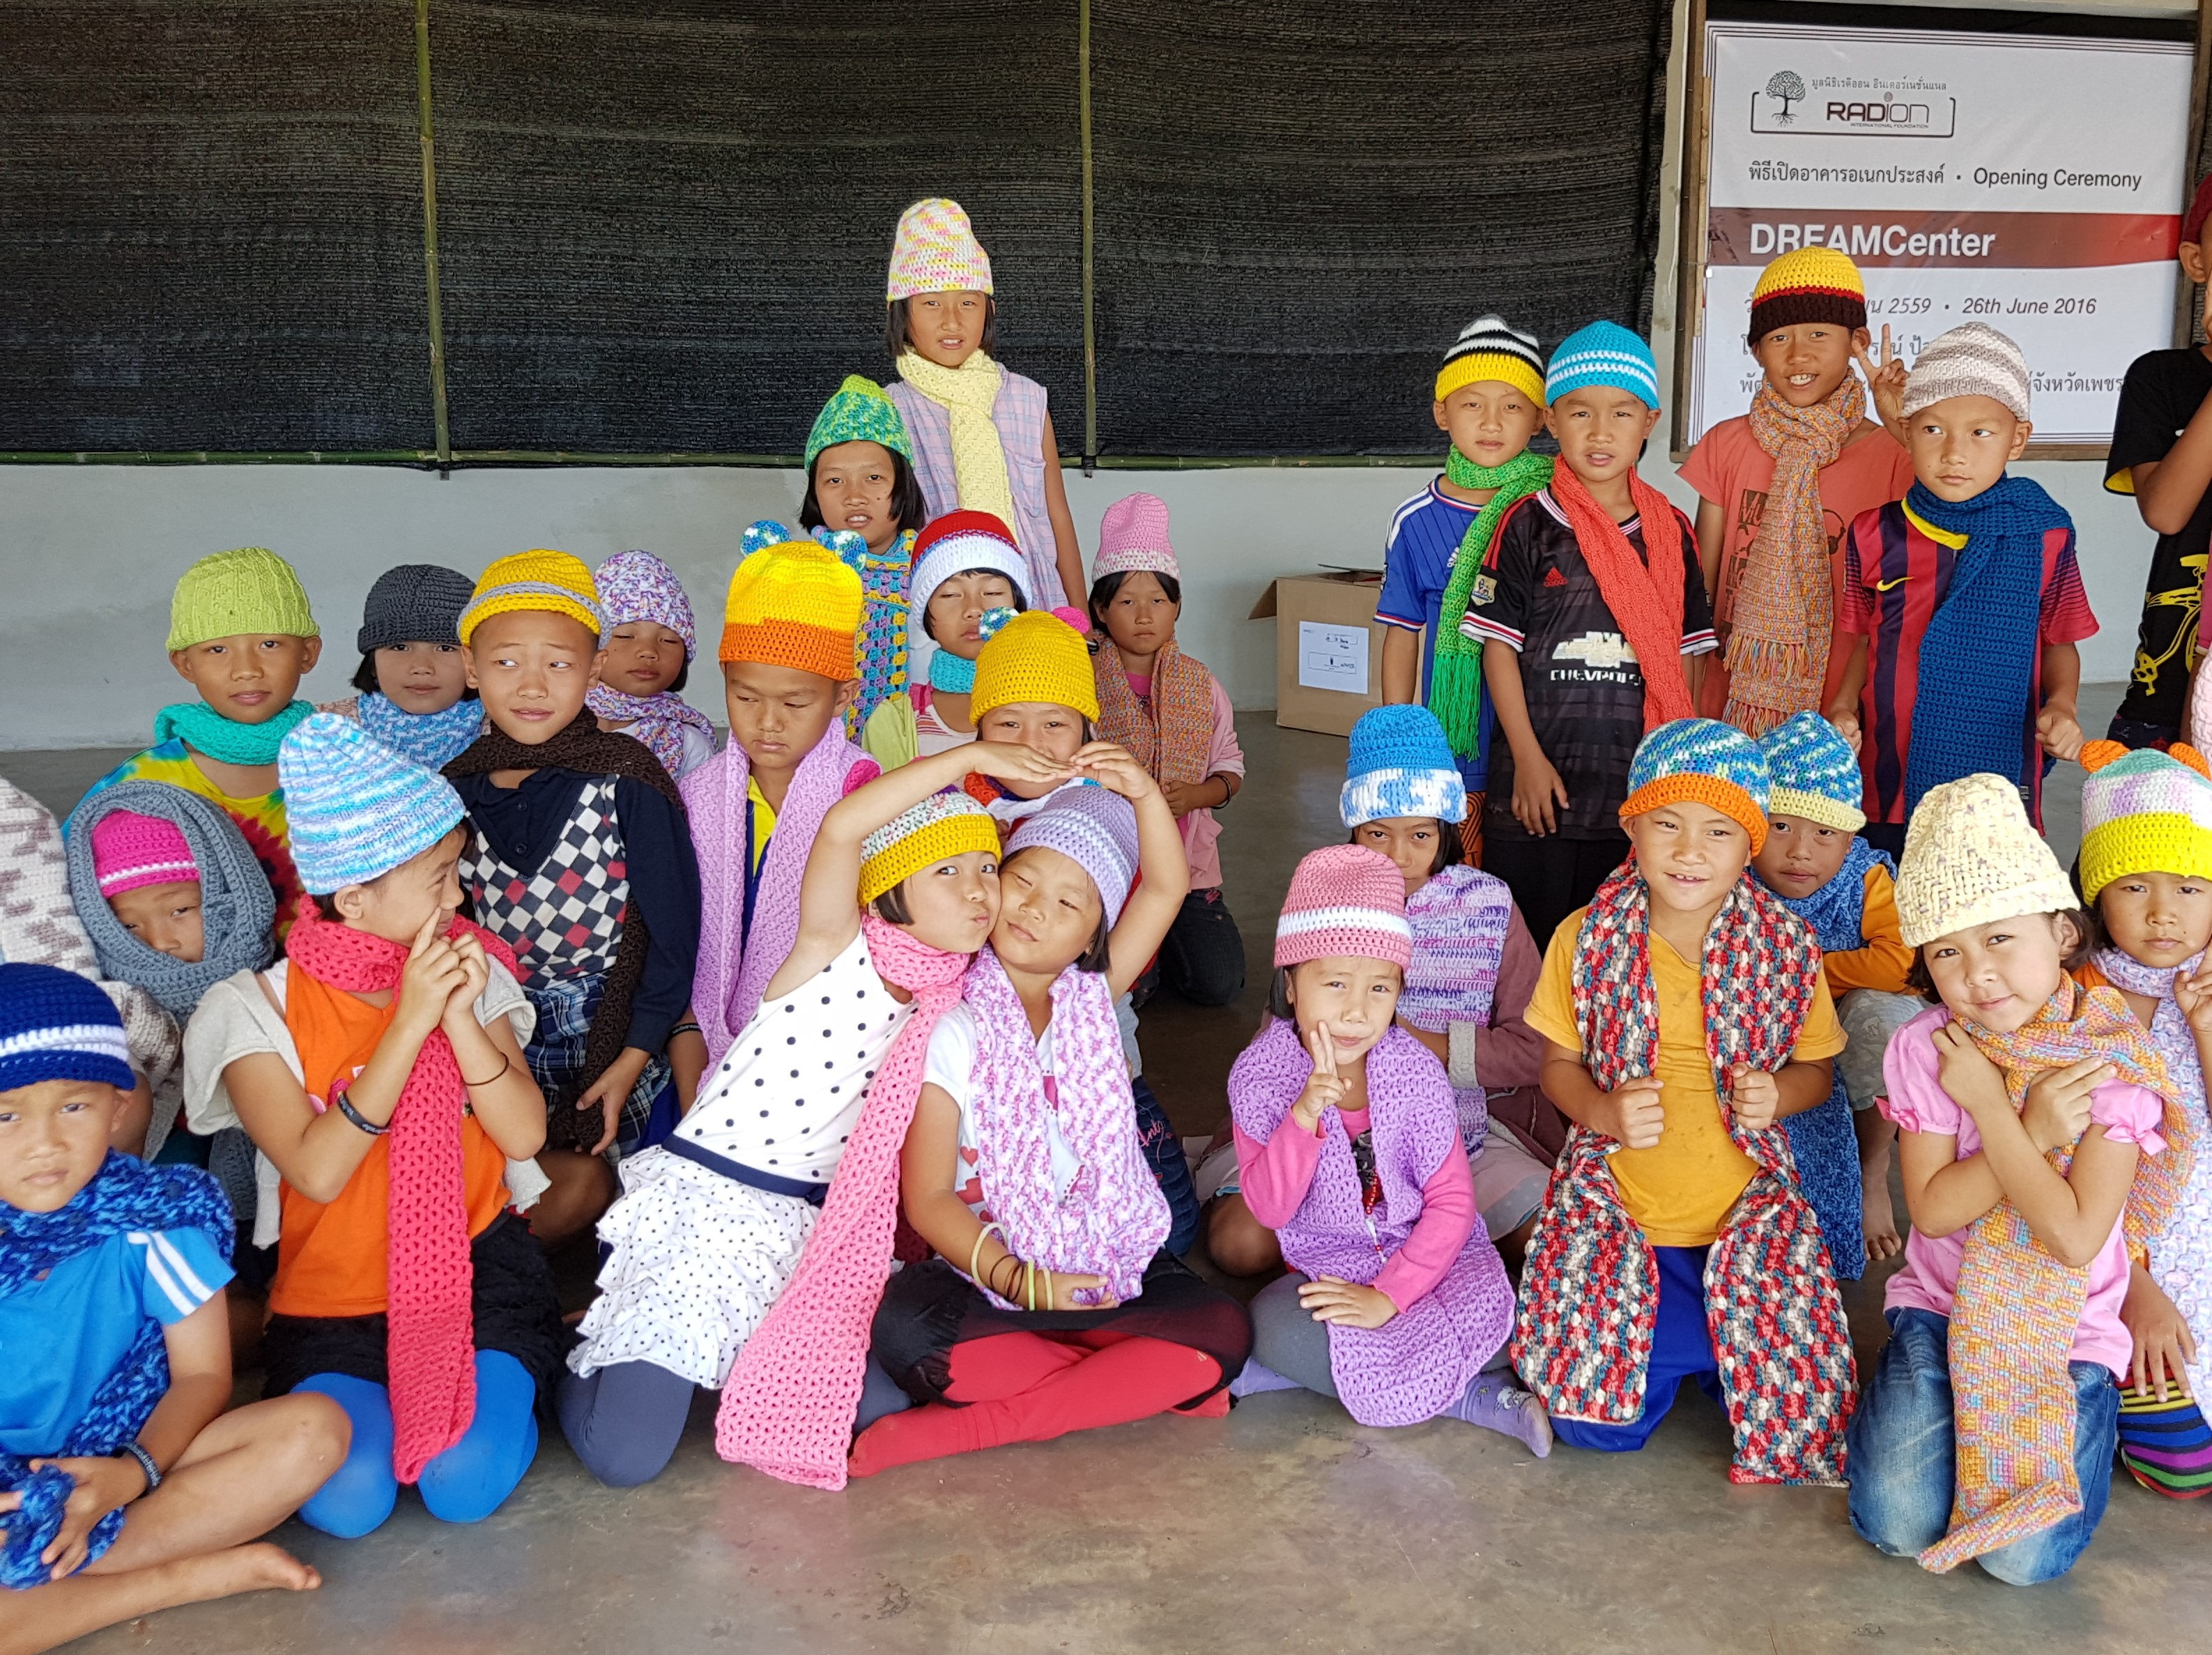 thai-children-in-knitwear-produced-by-singaporean-hobbyists-data